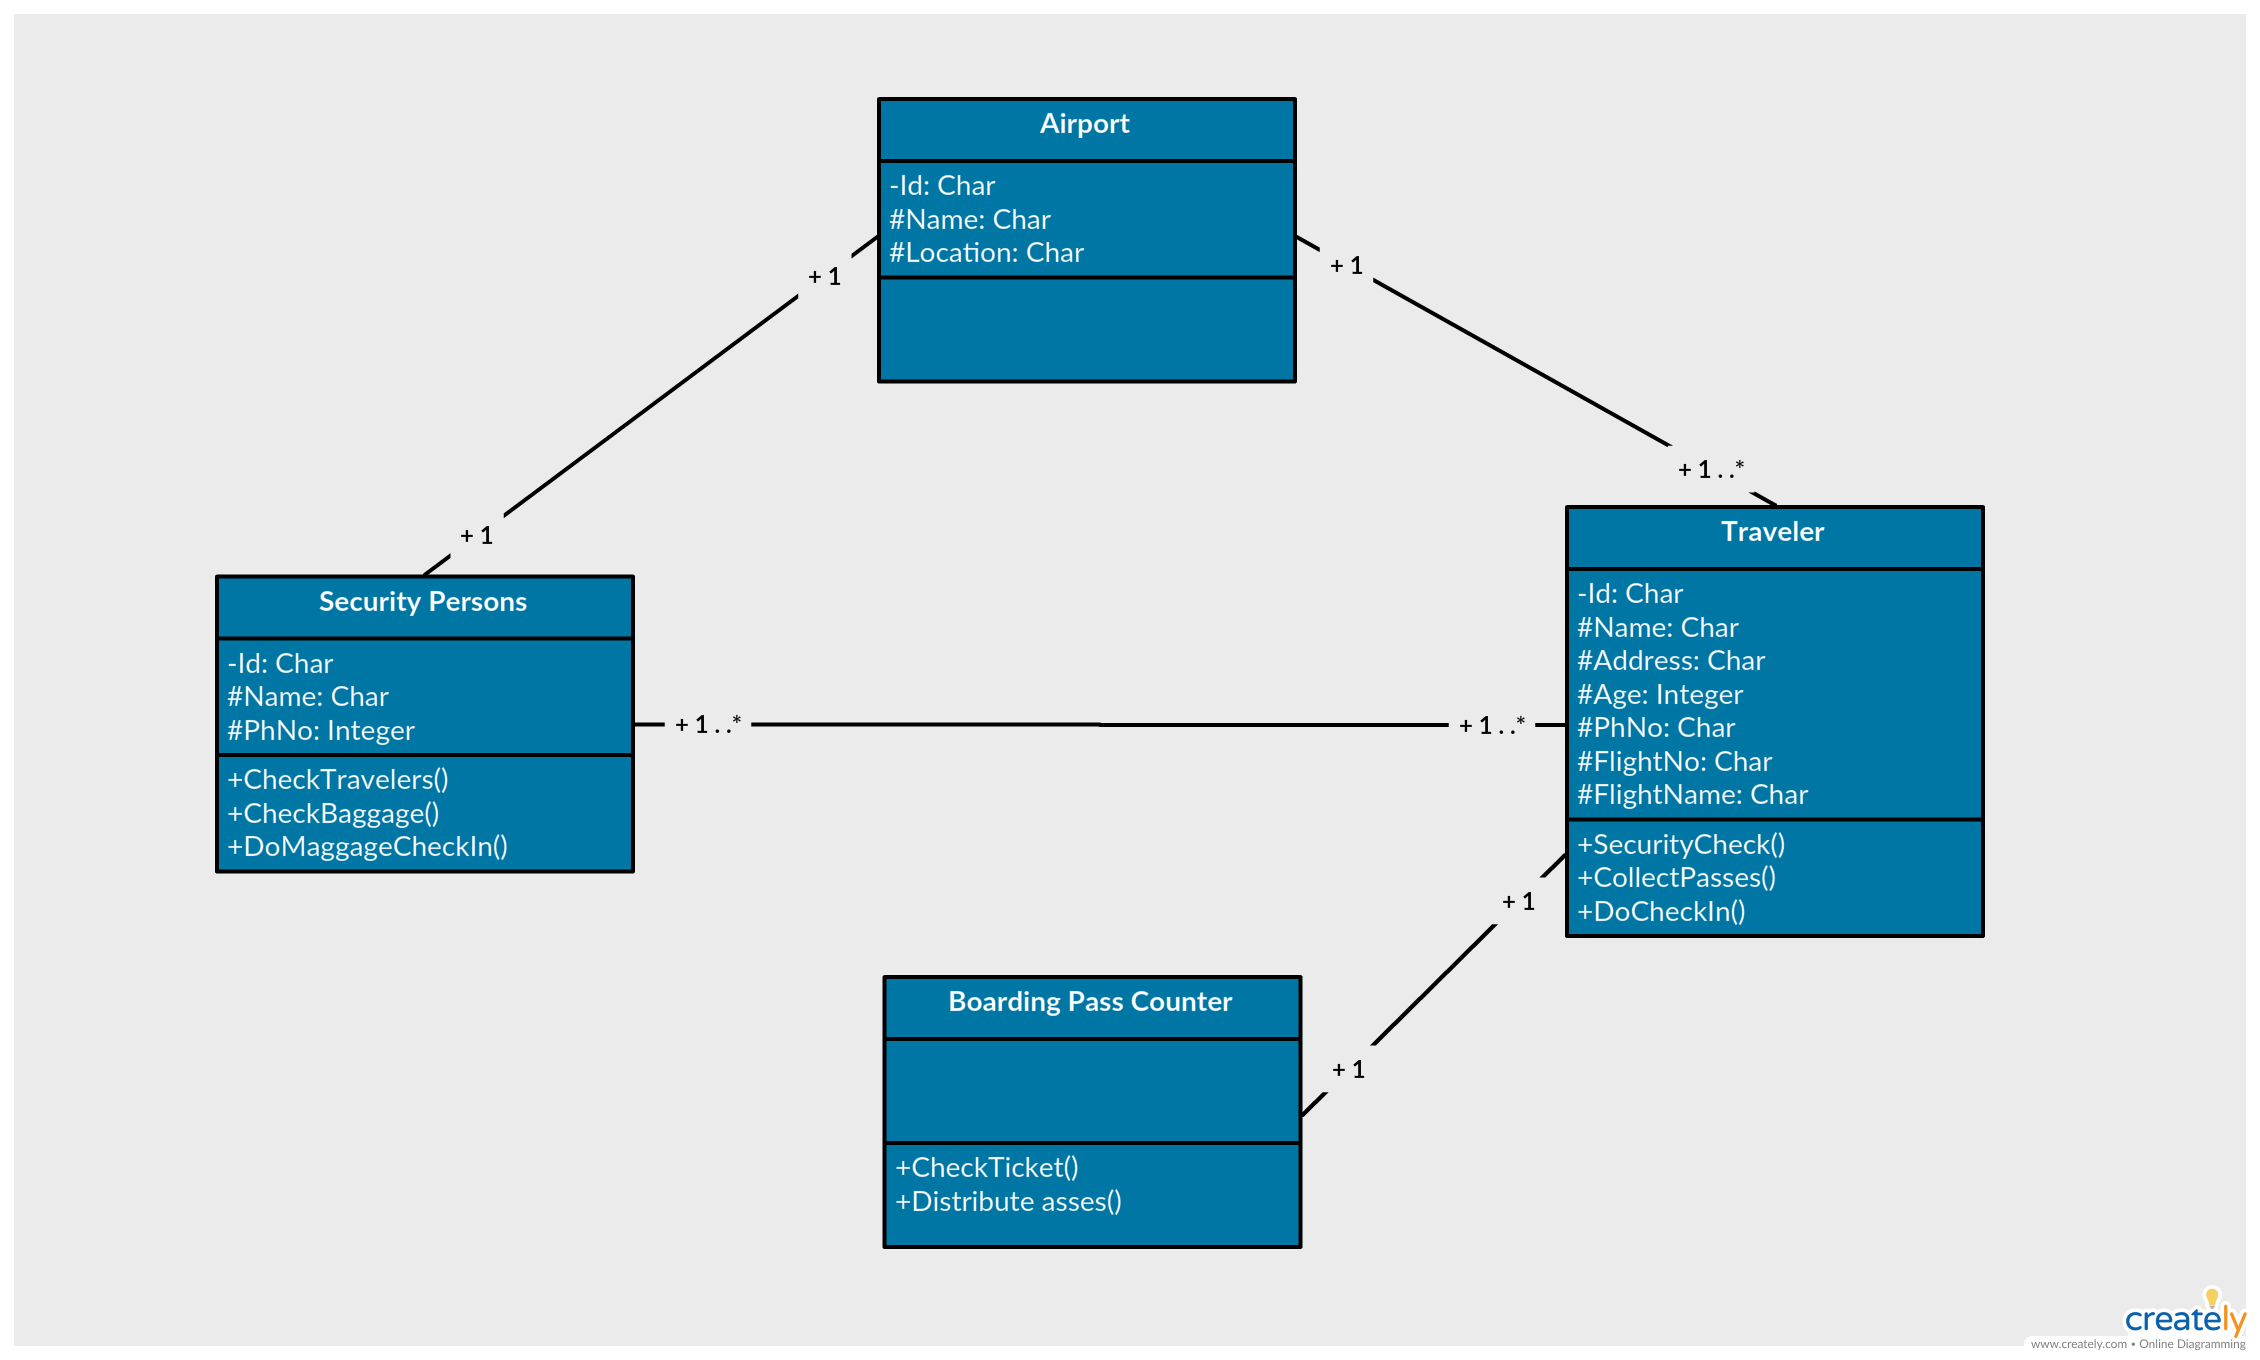 medium resolution of uml class diagram example airport security and checkin system class diagram template to modify as per your requirement click on the image and use this